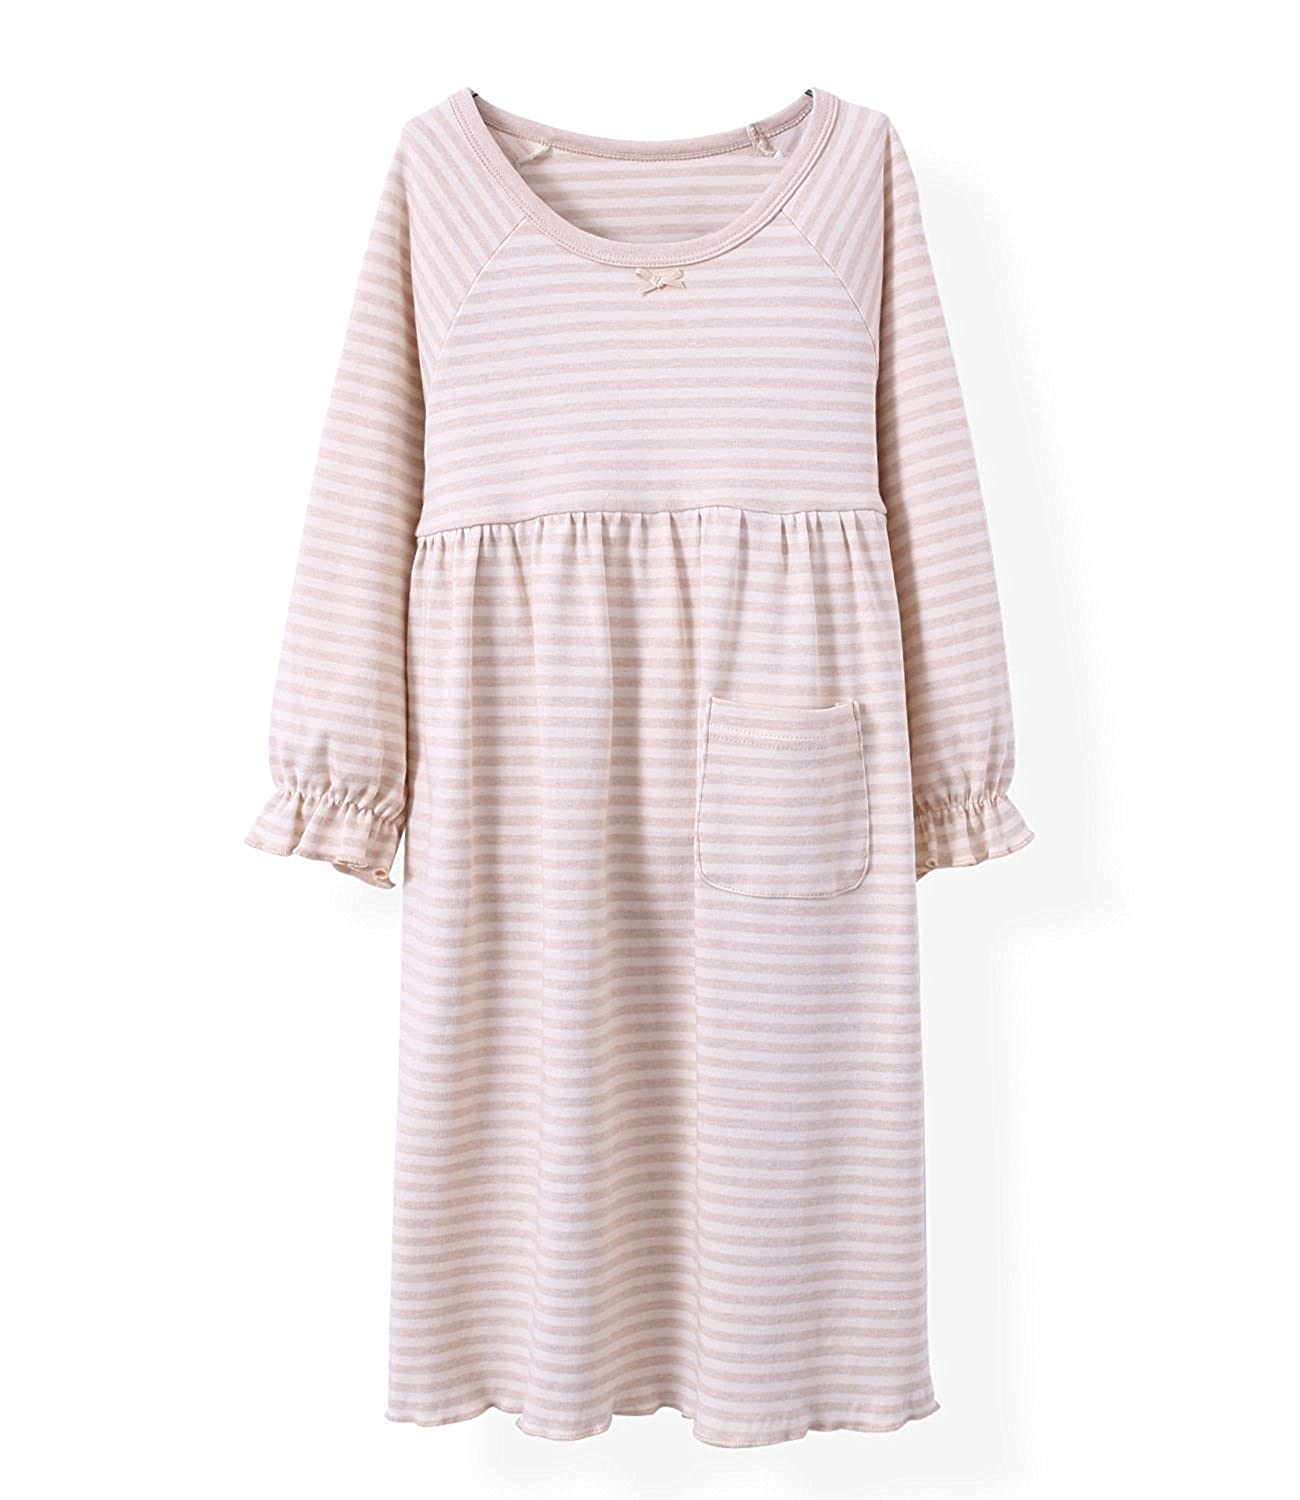 Spring Girls' Stripes Nightgowns Pure Cotton Sleep Dresses Cotton Sleepwear